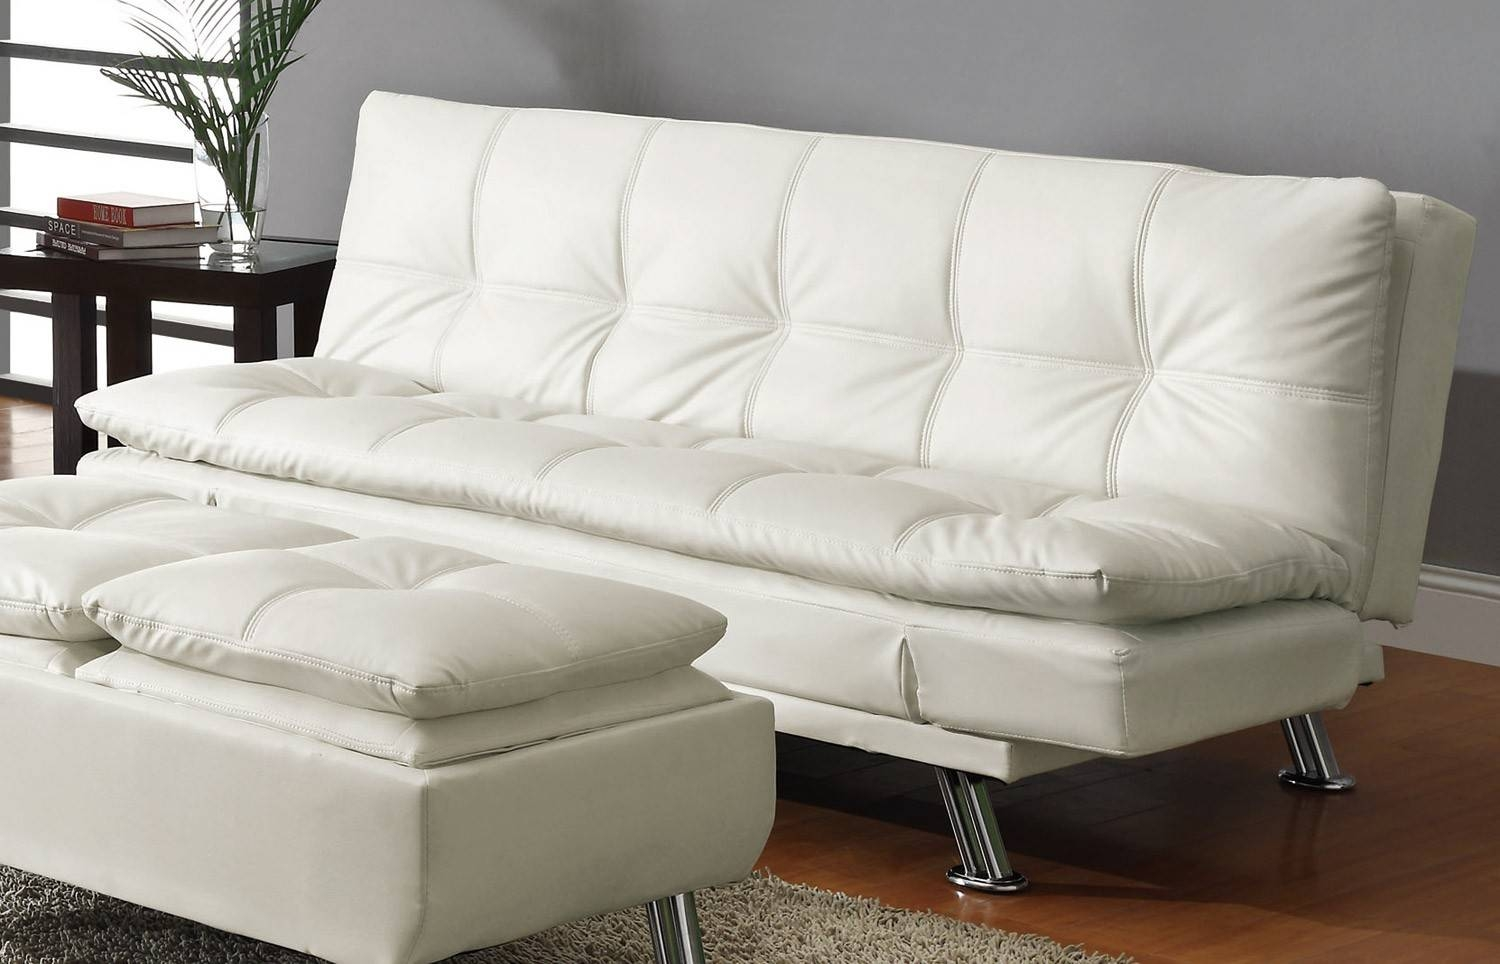 Sofas Center : 42 Unbelievable Most Comfortable Sofa Images Ideas with Comfortable Convertible Sofas (Image 22 of 30)